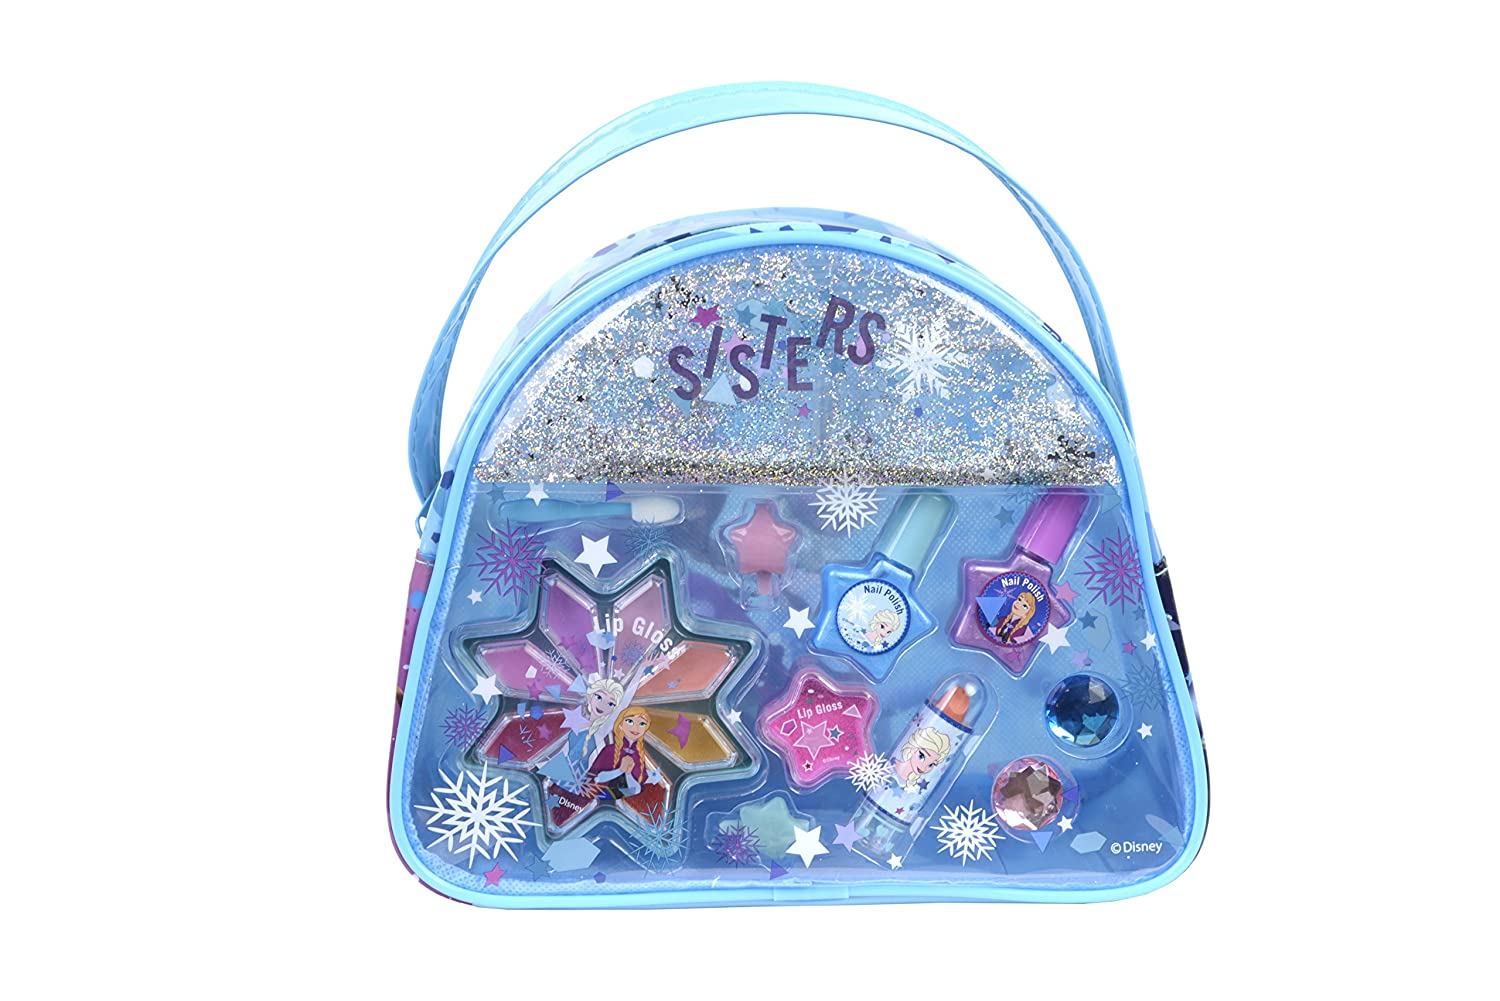 DISNEY FROZEN Snow Magic Beauty Bag Kit Maquillage pour Enfant 1 Rouge à Lèvres 8 Gloss 2 Vernis Accessoires 9800310